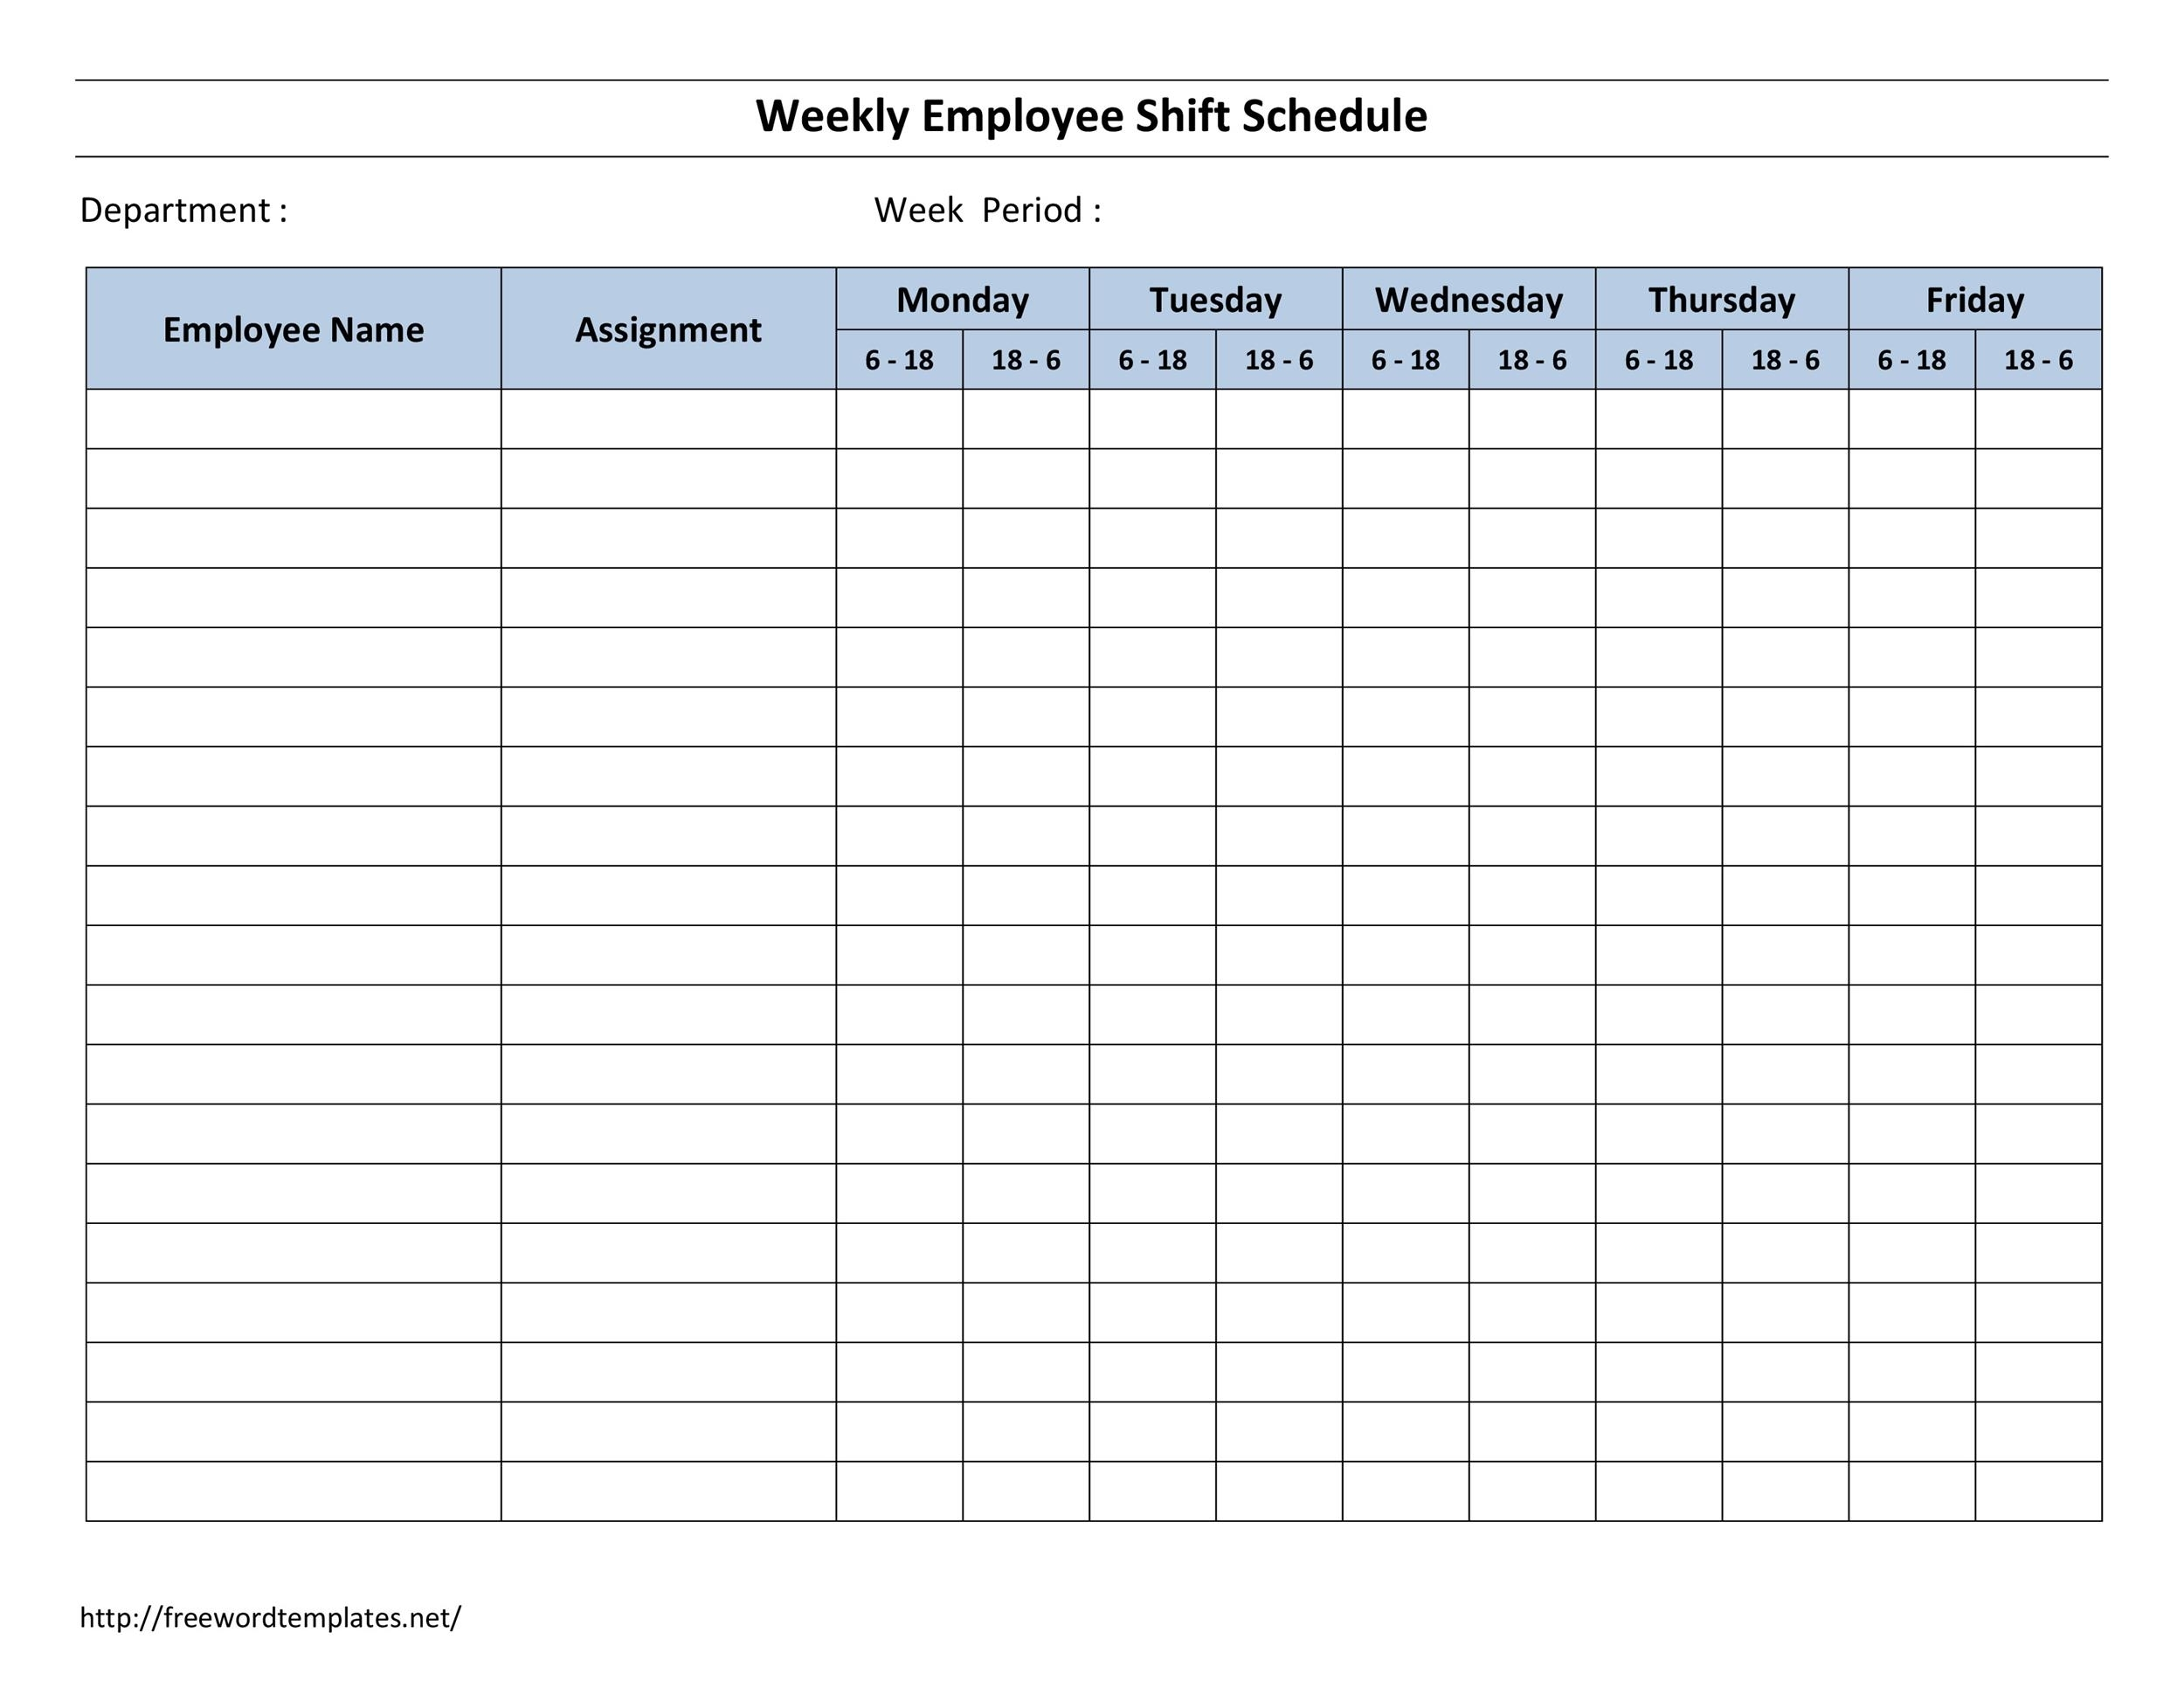 14 Dupont Shift Schedule Templats For Any Company [Free] ᐅ in 12 Hour Shift Calendar 2020